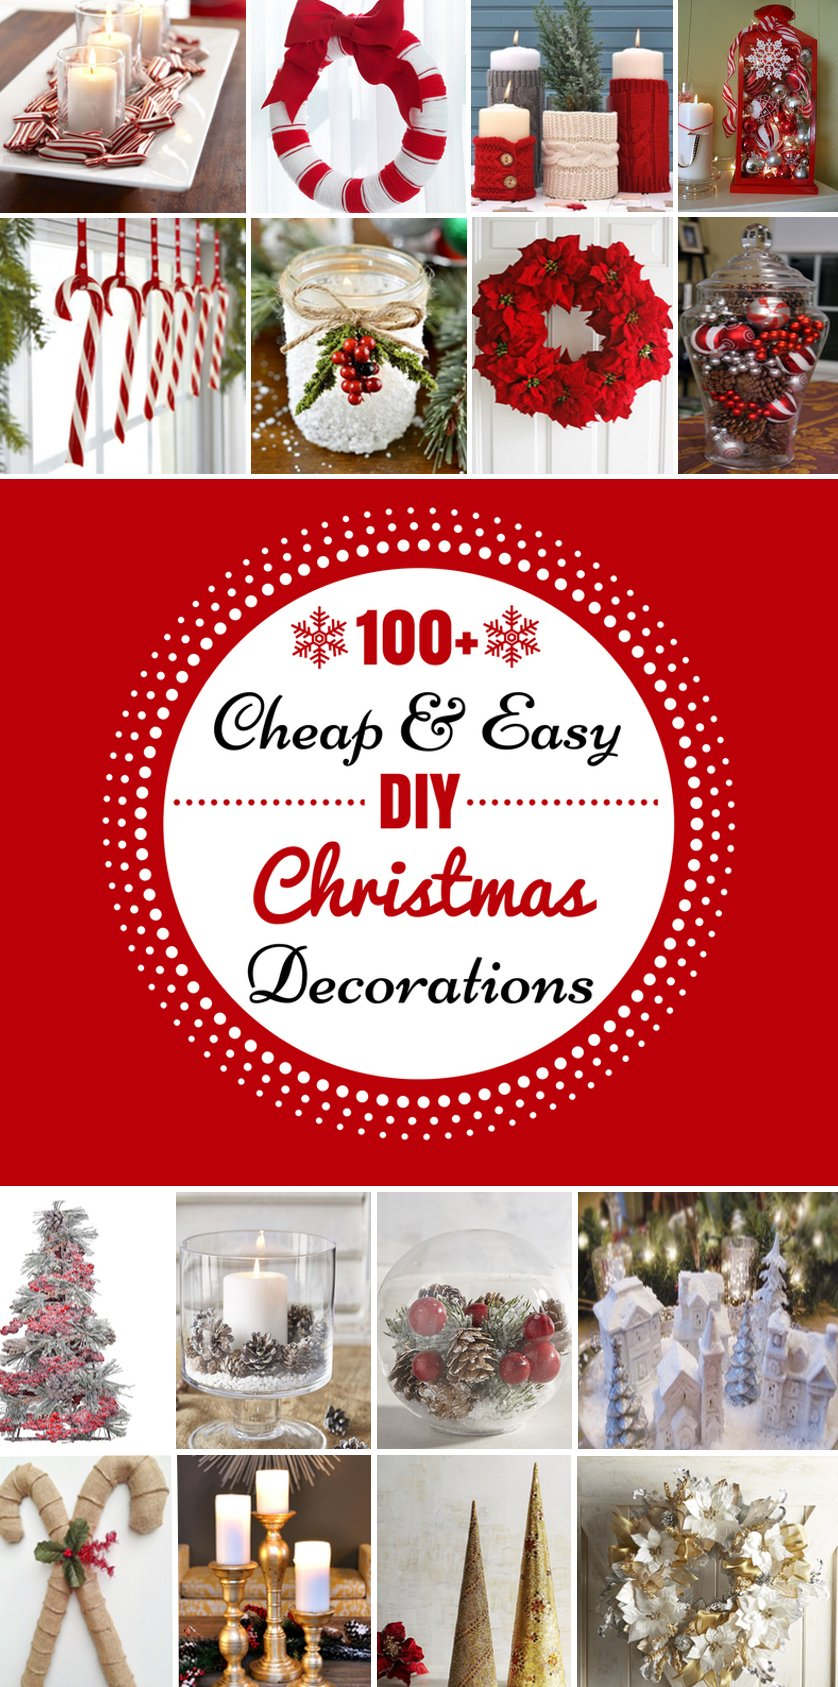 Uncategorized Decorate For Christmas On A Budget 100 cheap easy diy christmas decorations prudent penny pincher decorations